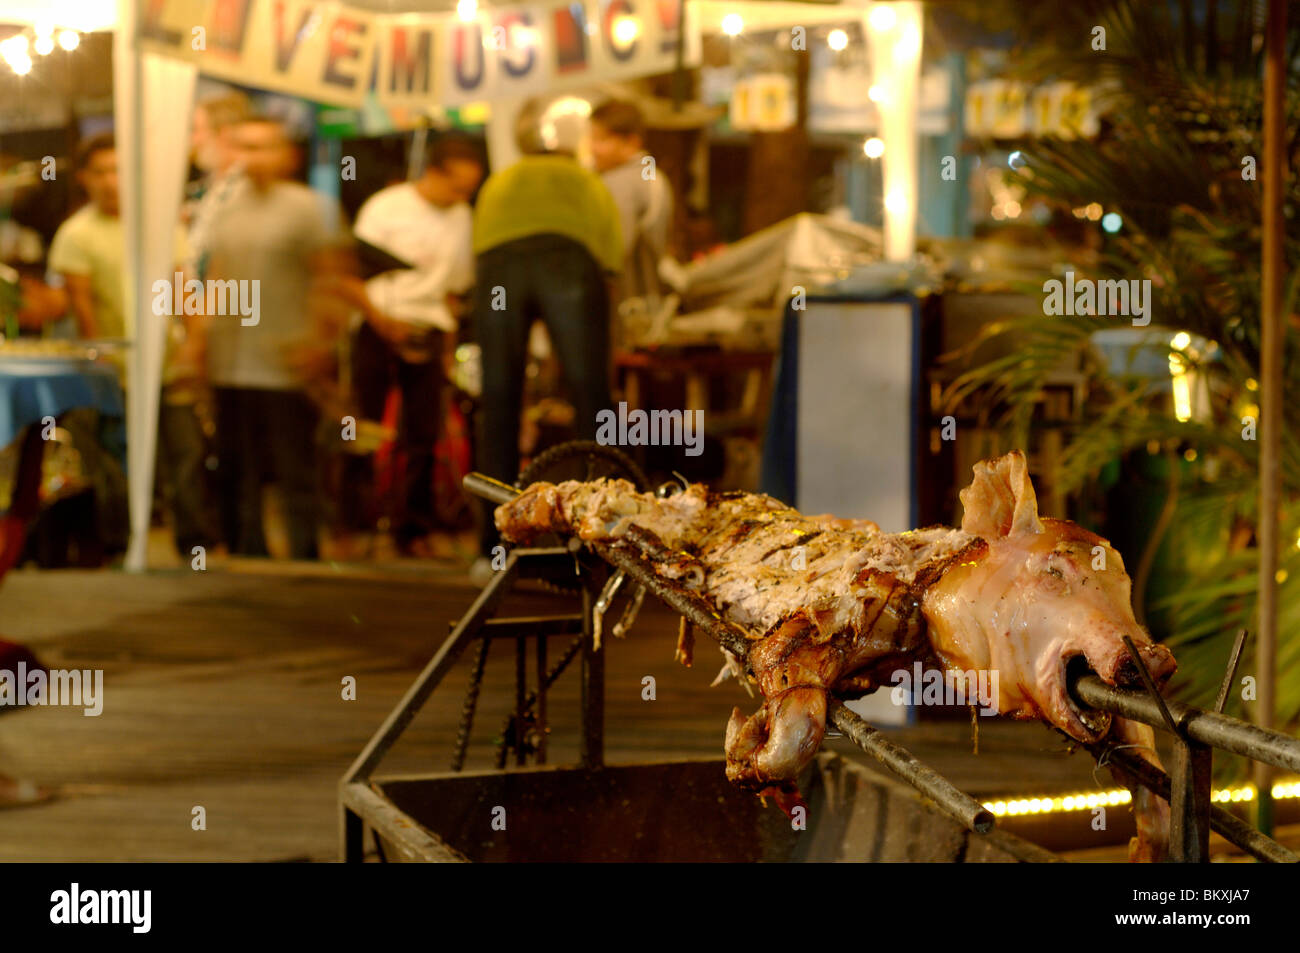 Non Veg Food being cook on Pattaya Street Pattaya Thailand ; South East Asia - Stock Image